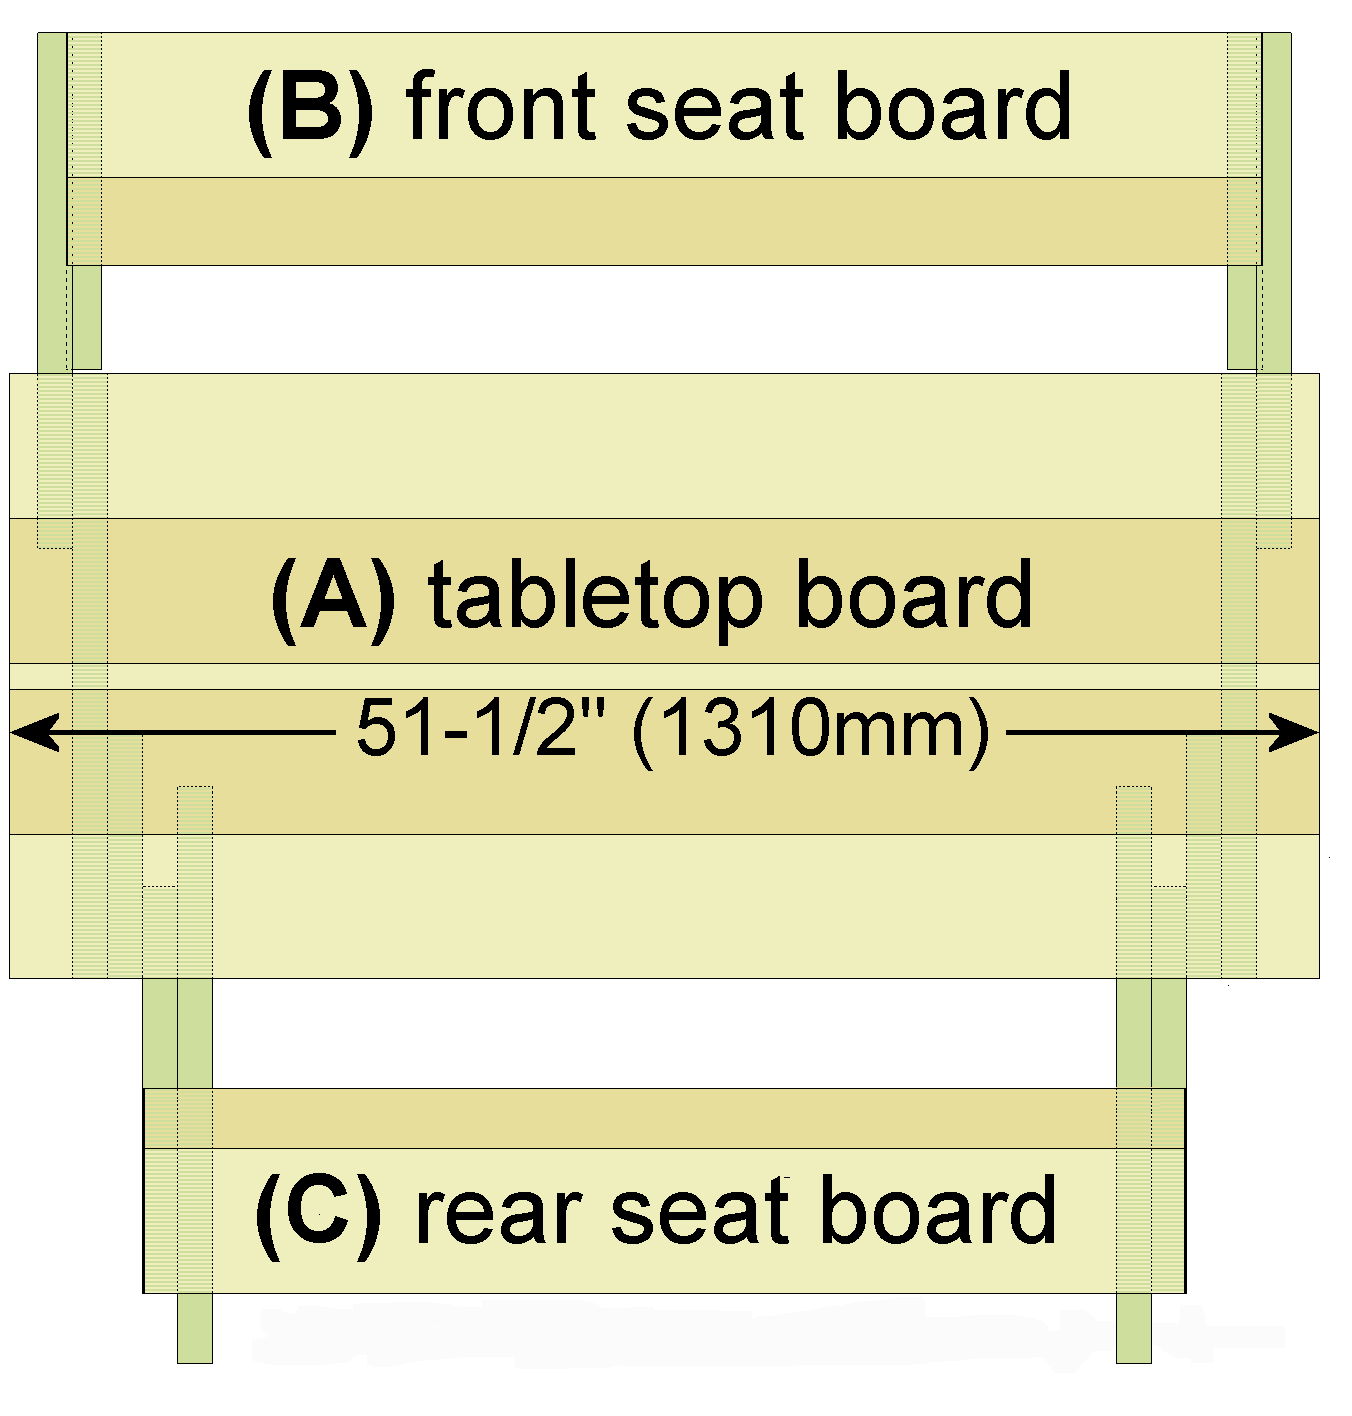 folding picnic table boards - the length